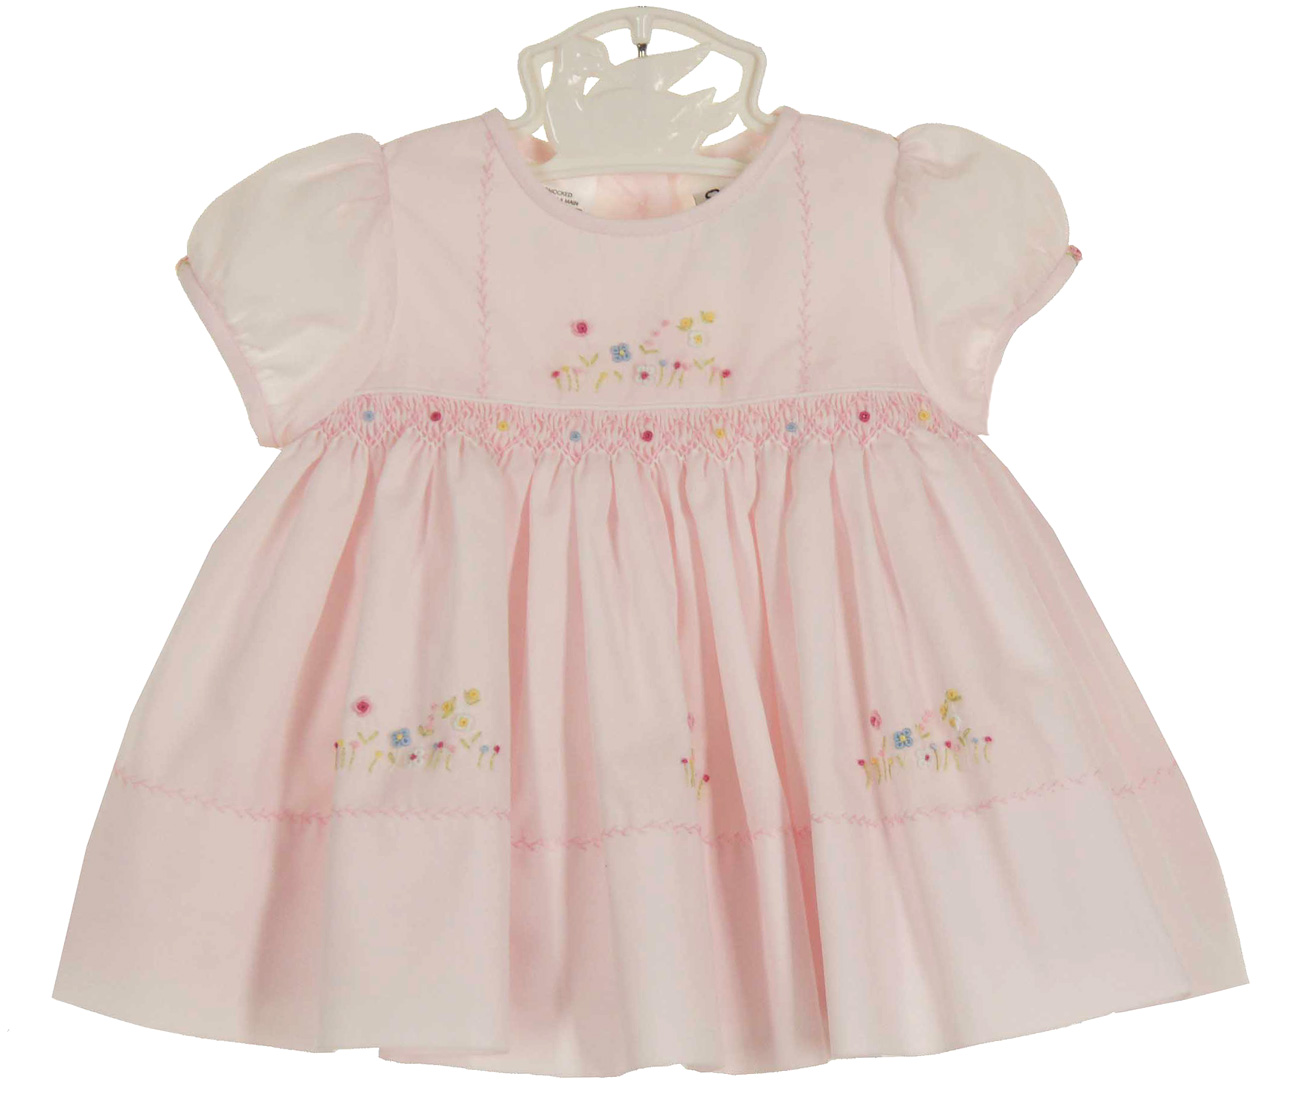 Sarah Louise pink smocked dress with embroidered flowers d9fc9f087